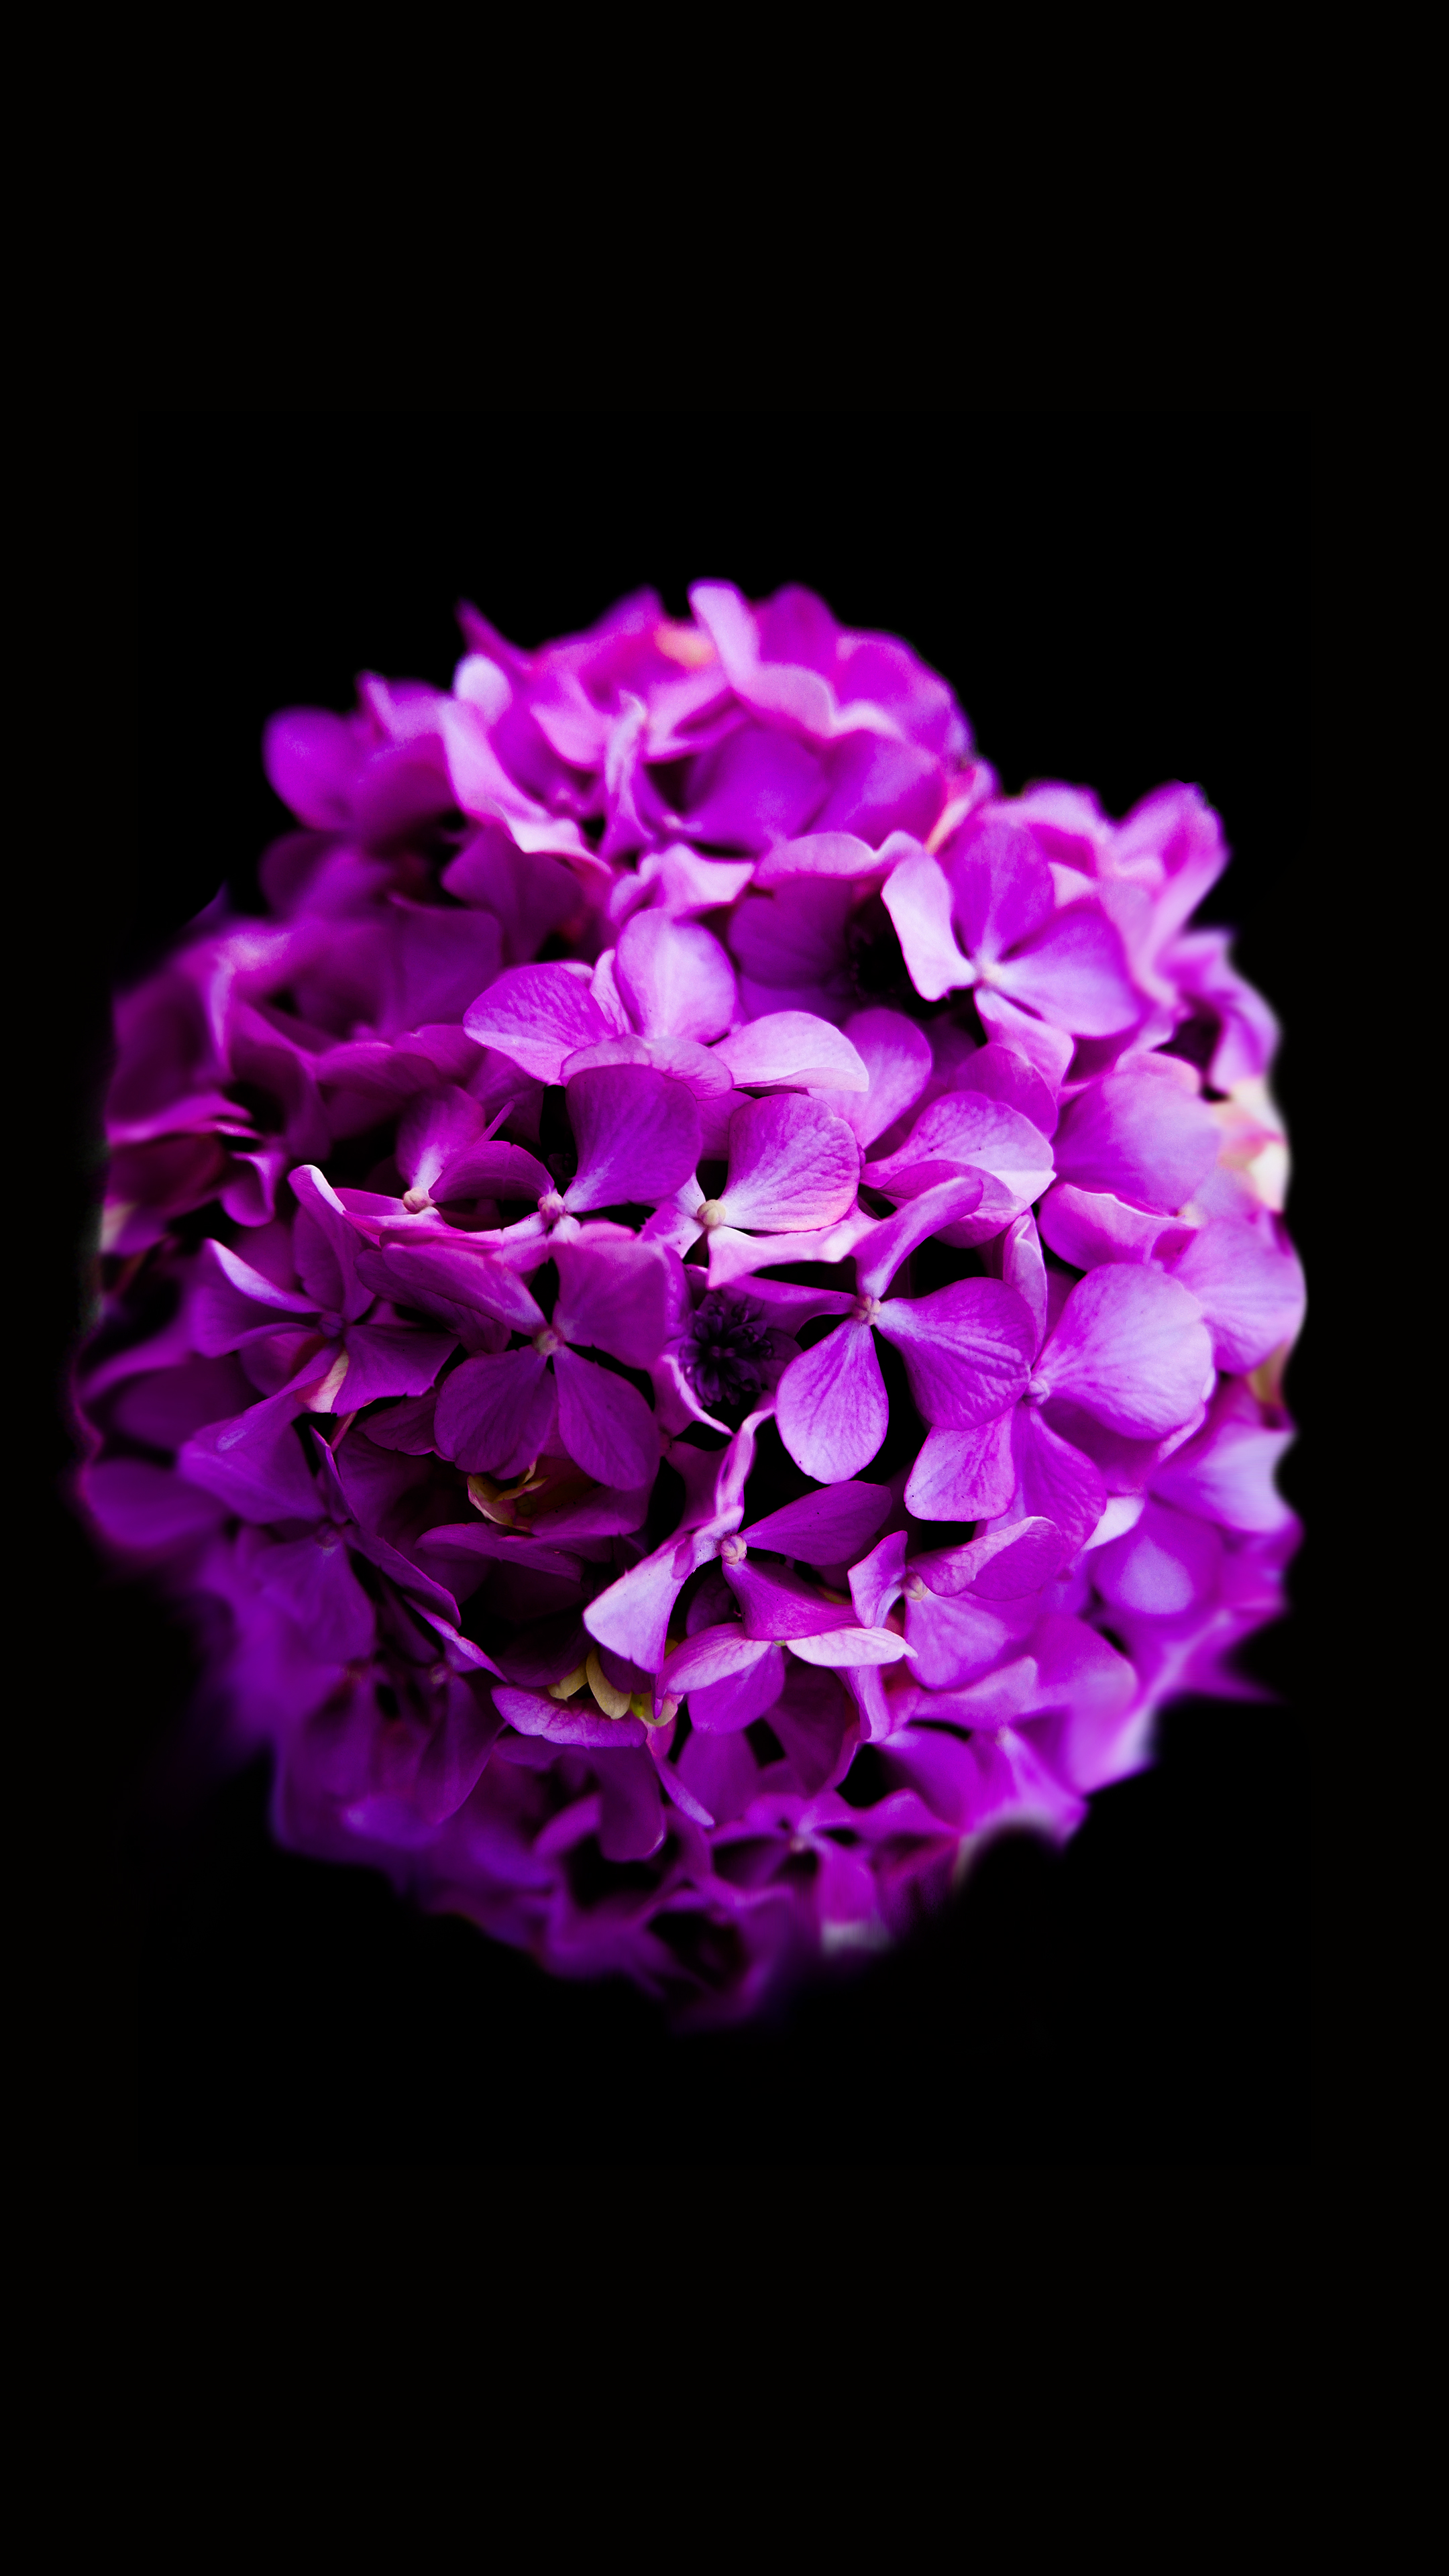 Close Up Photography Of Purple Petaled Flower 183 Free Stock